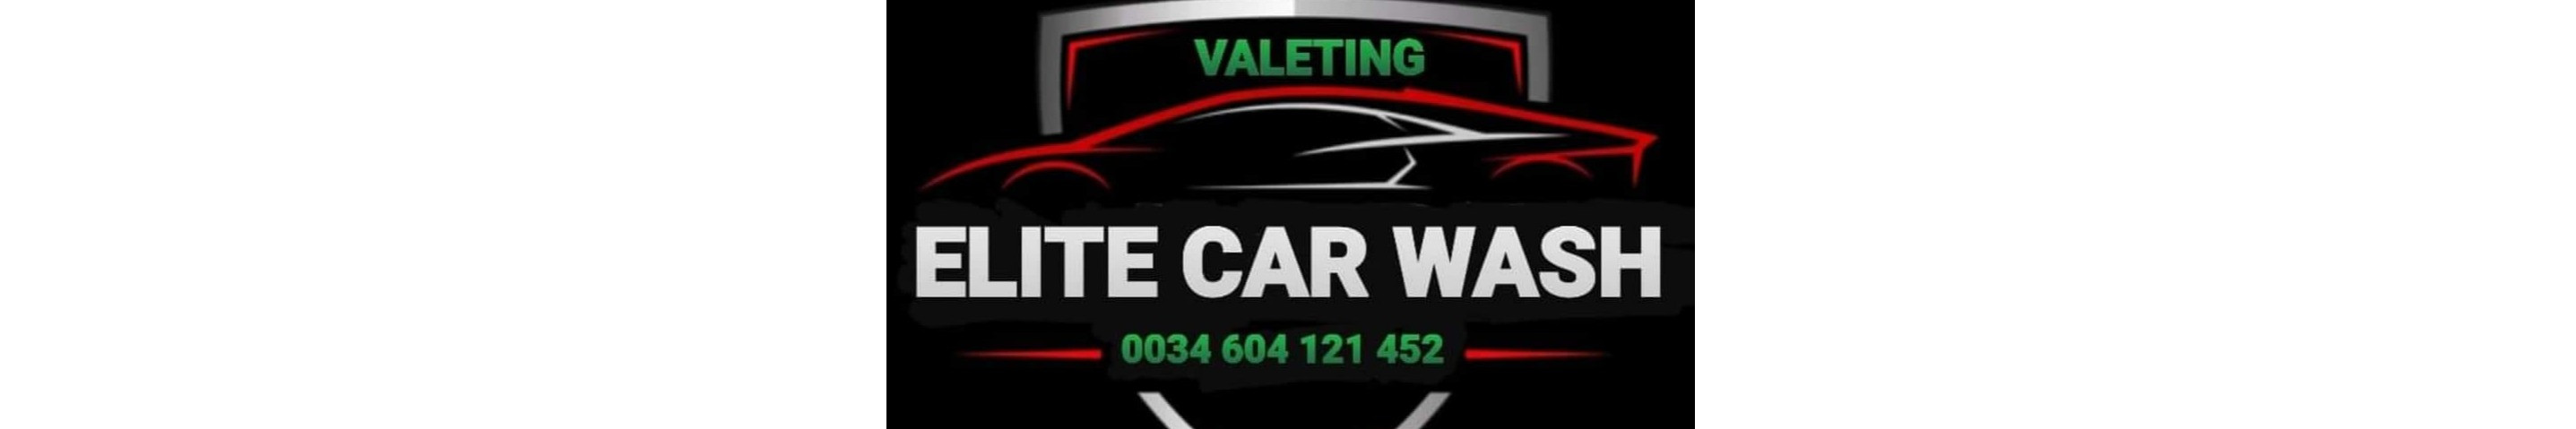 ELITE CAR WASH First for choice